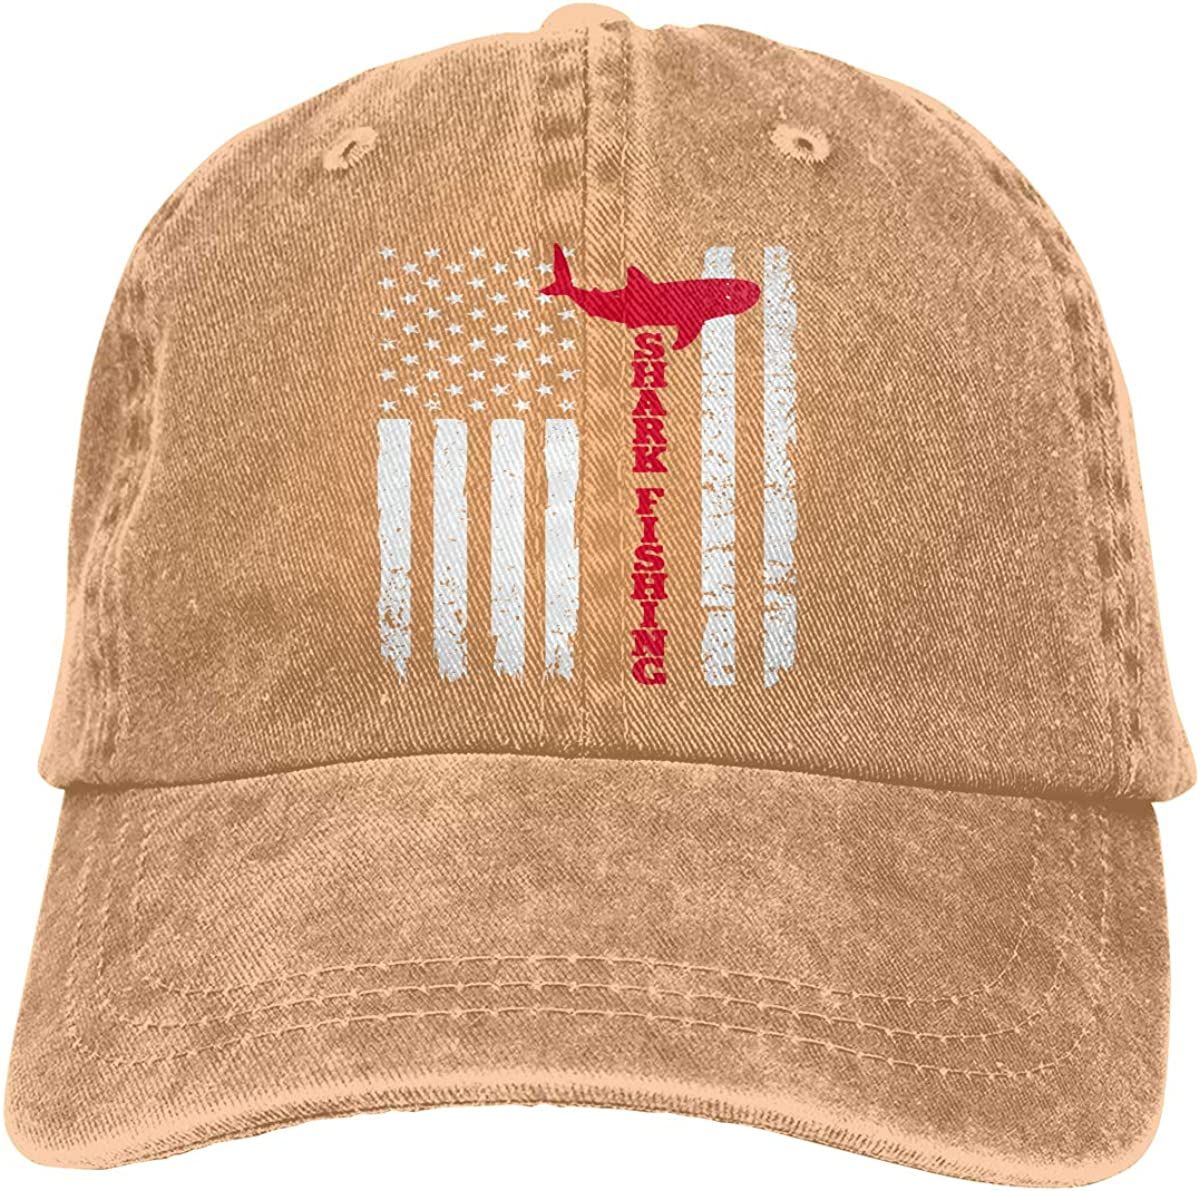 PMGM-C American Flag Hunt Fish Unisex Personalize Cowboy Hip Hop Cap Adjustable Baseball Cap